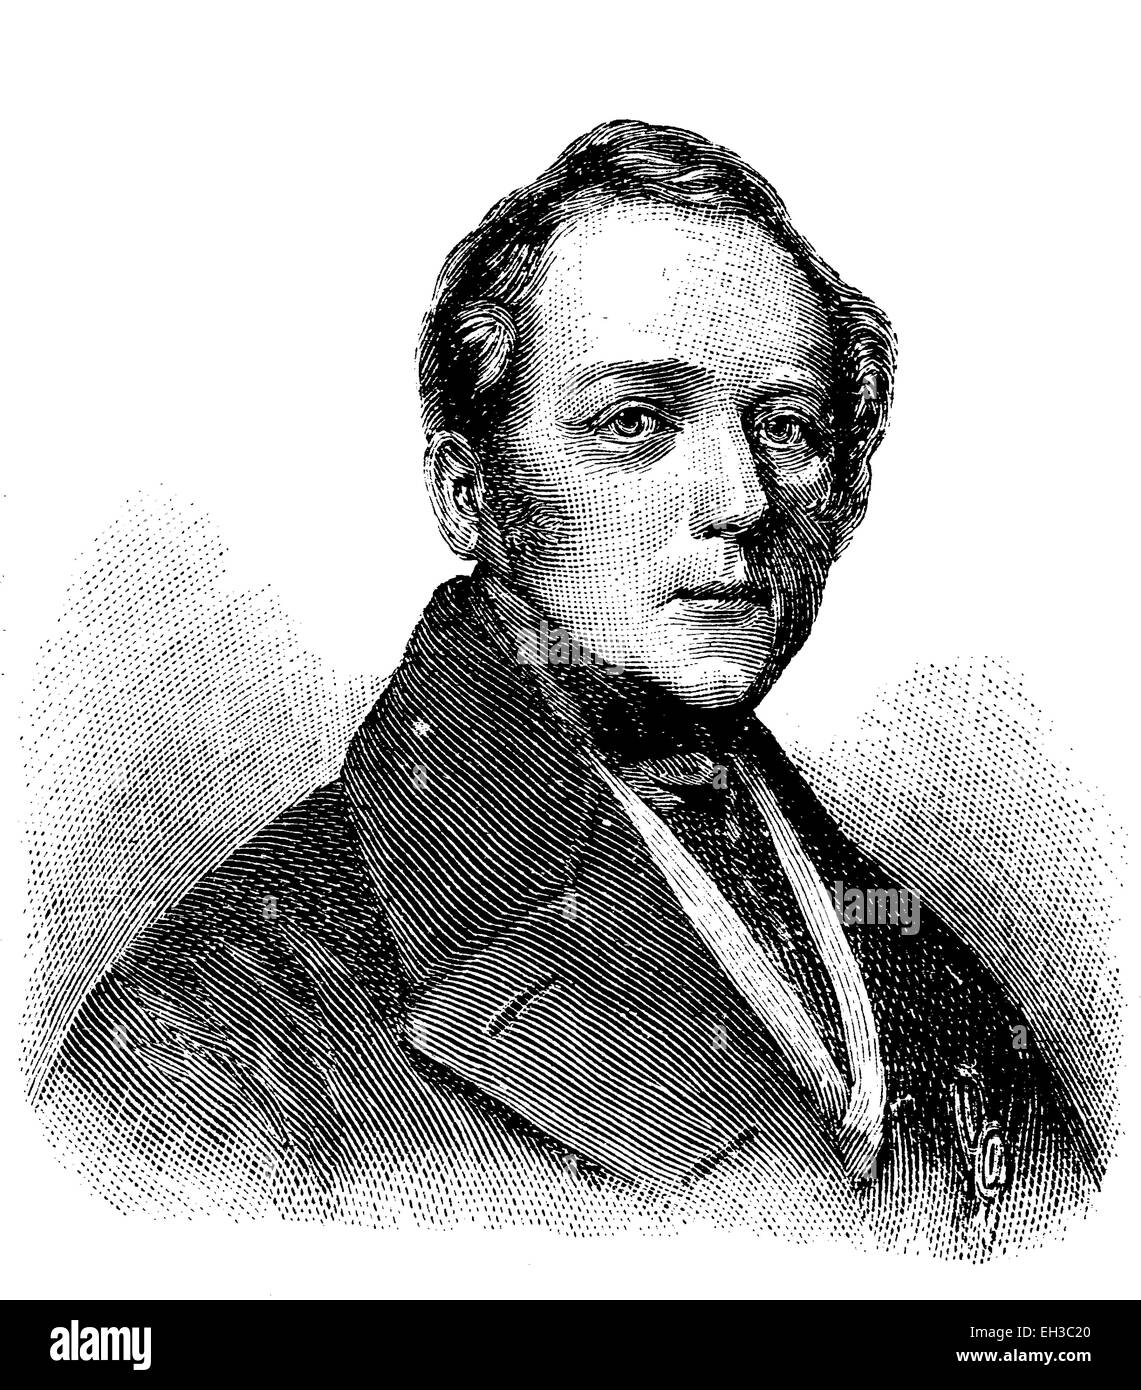 Leopold von Baden, 1790-1852, Grand Duke of Baden from 1830 until his death, historic woodcut, c. 1880 - Stock Image